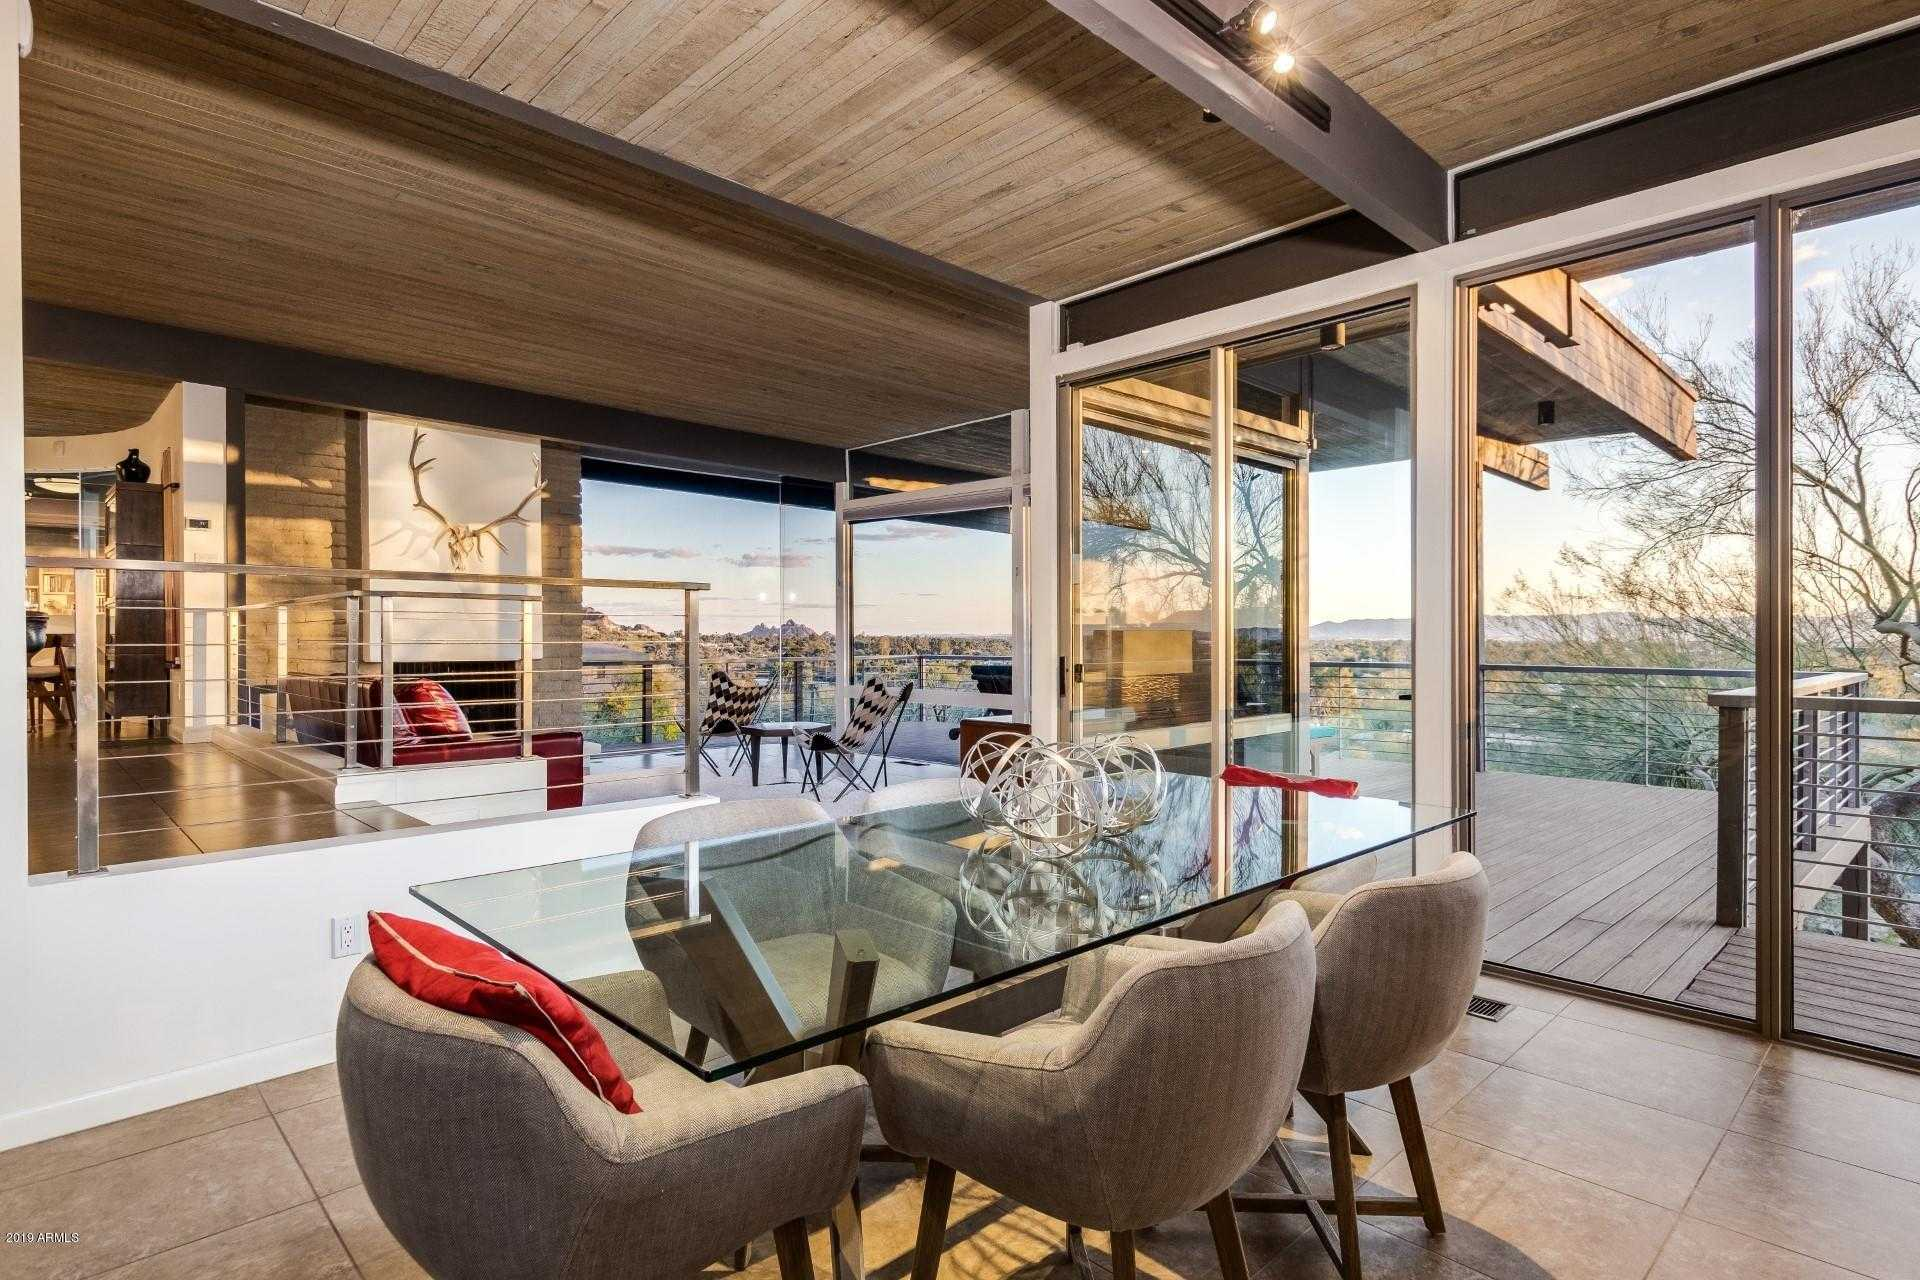 $2,899,000 - 4Br/4Ba - Home for Sale in Camelback Foothills 2, Paradise Valley